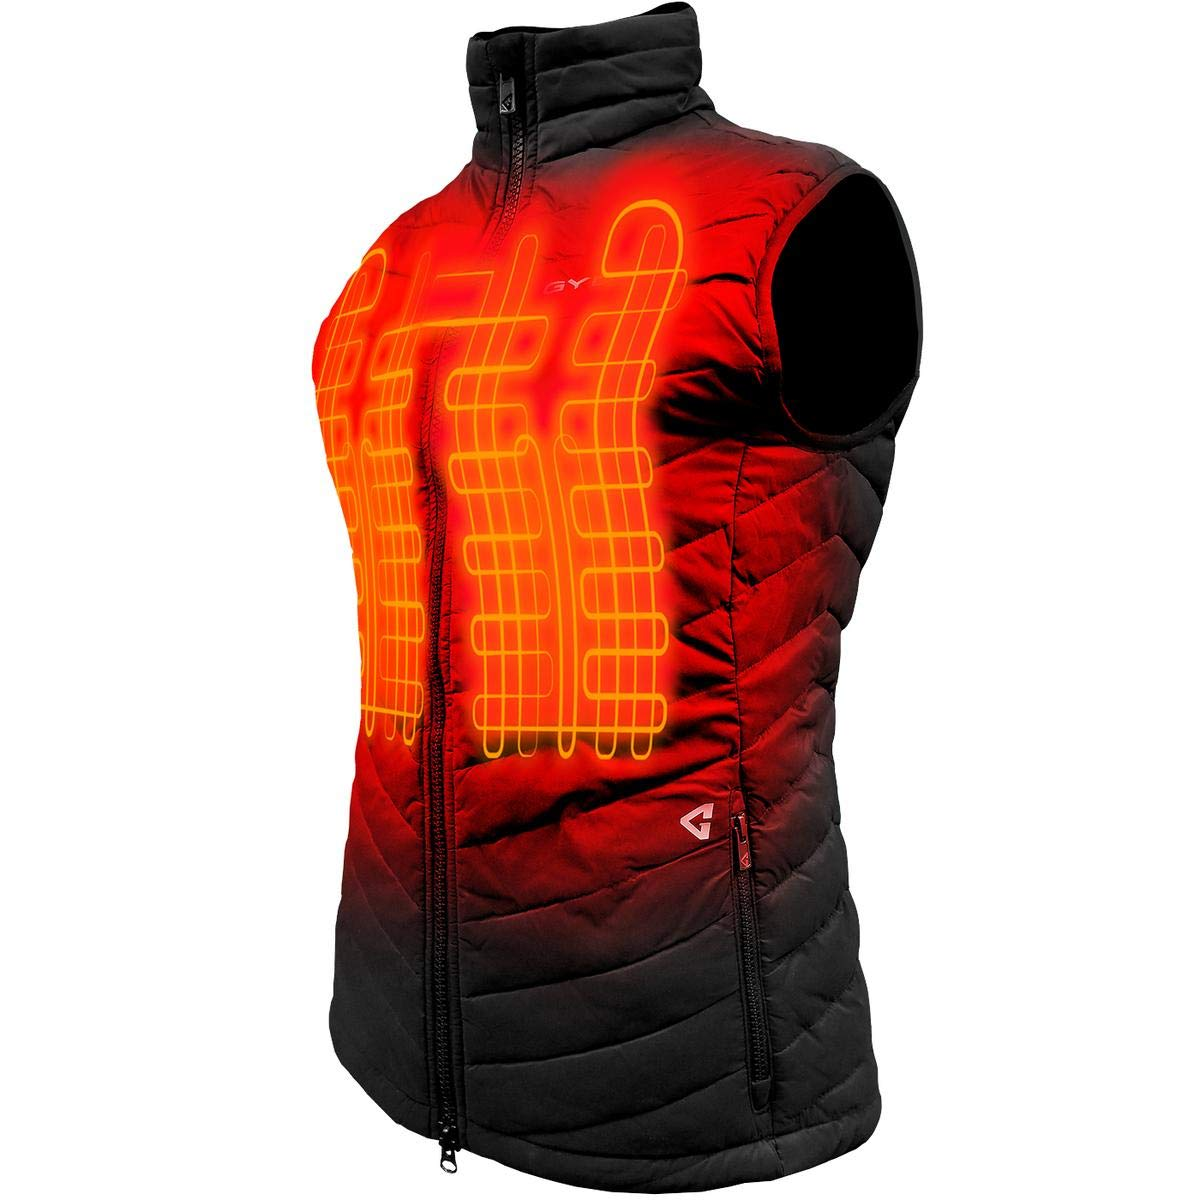 Gerbing Gyde 7V Khione Heated Vest for Women – Water Resistant Electric Puffer Vest for Winter Hiking Camping Motorcycle Riding– Sleeveless Heated Jacket with Battery Pack